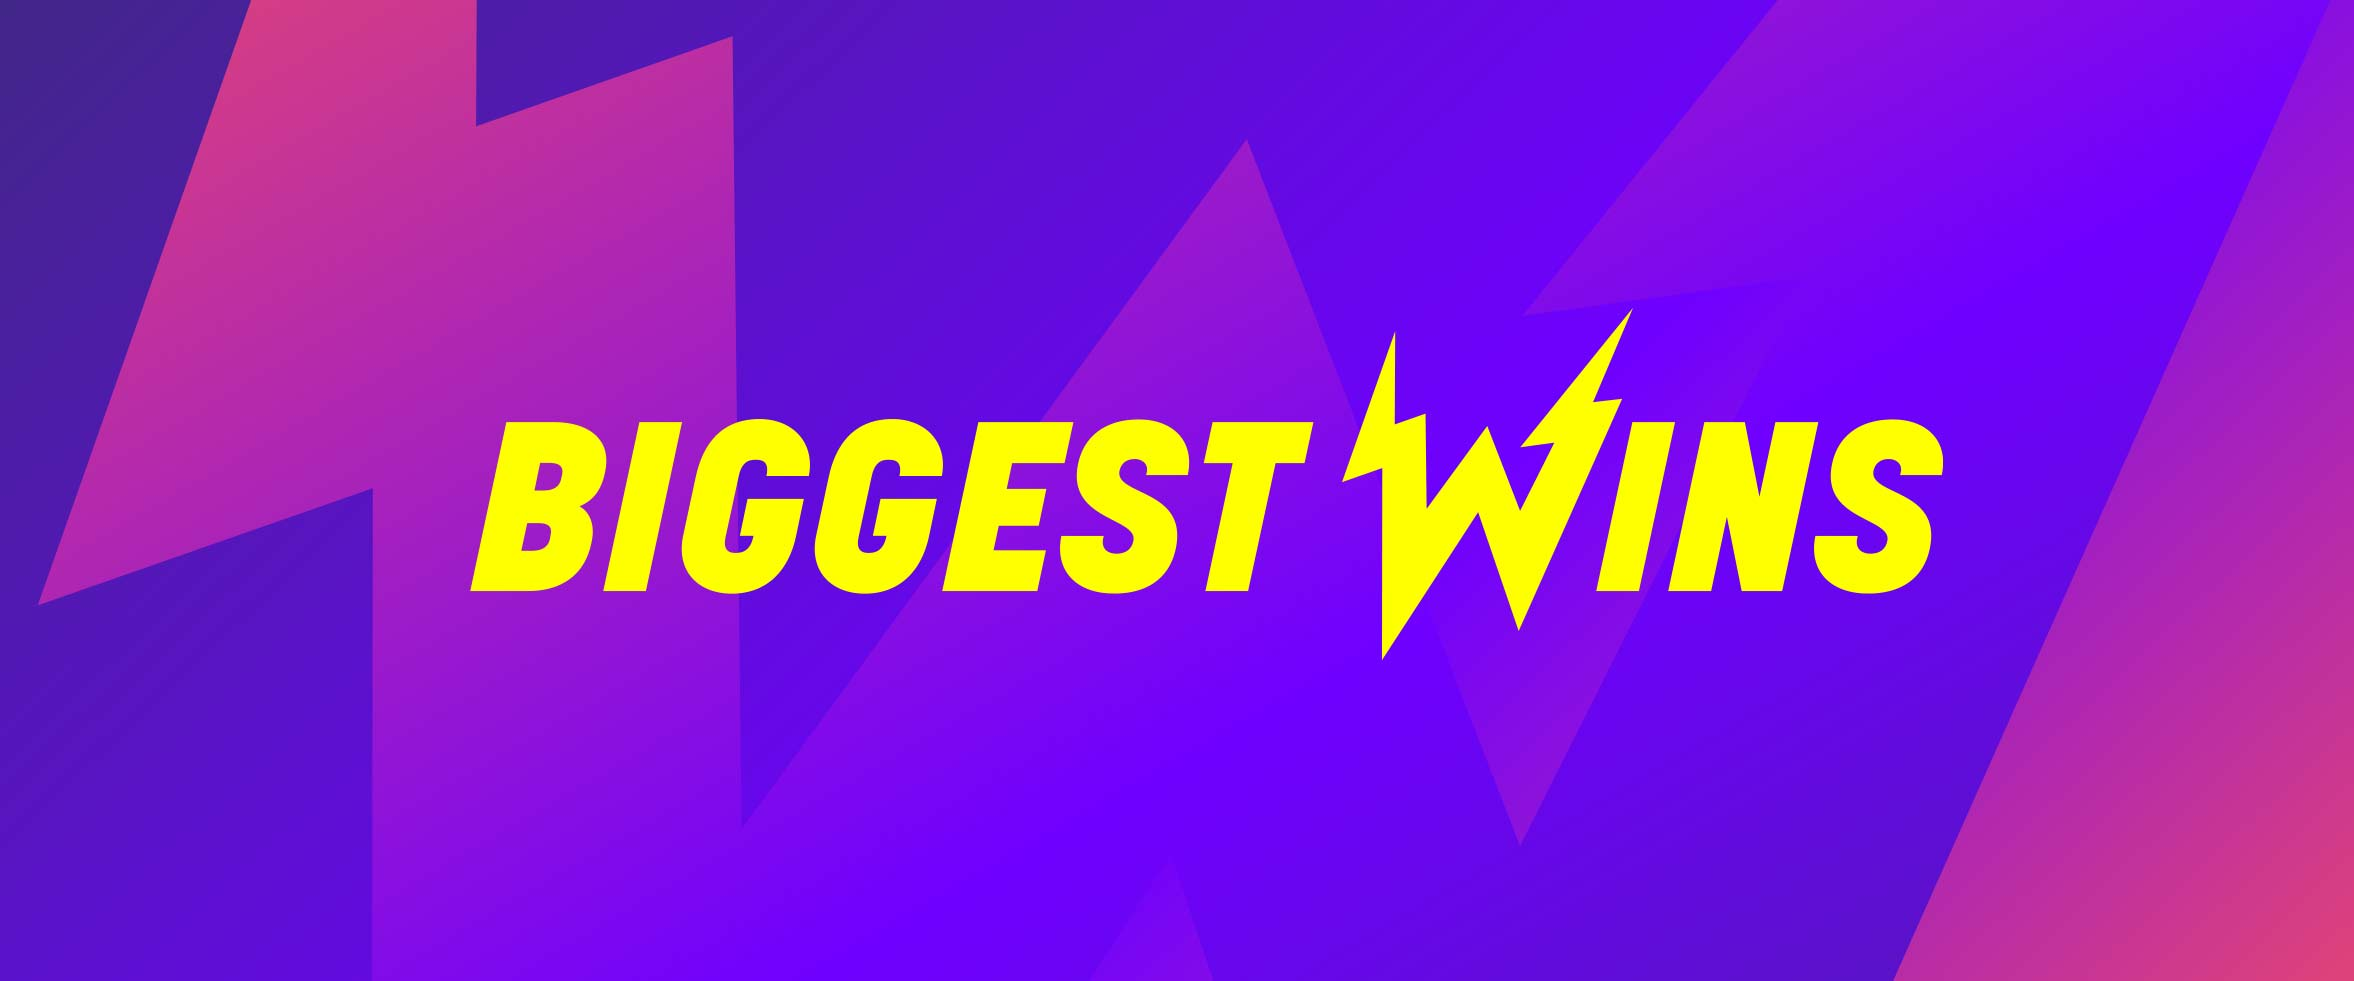 Biggest October wins at Wildz Casino